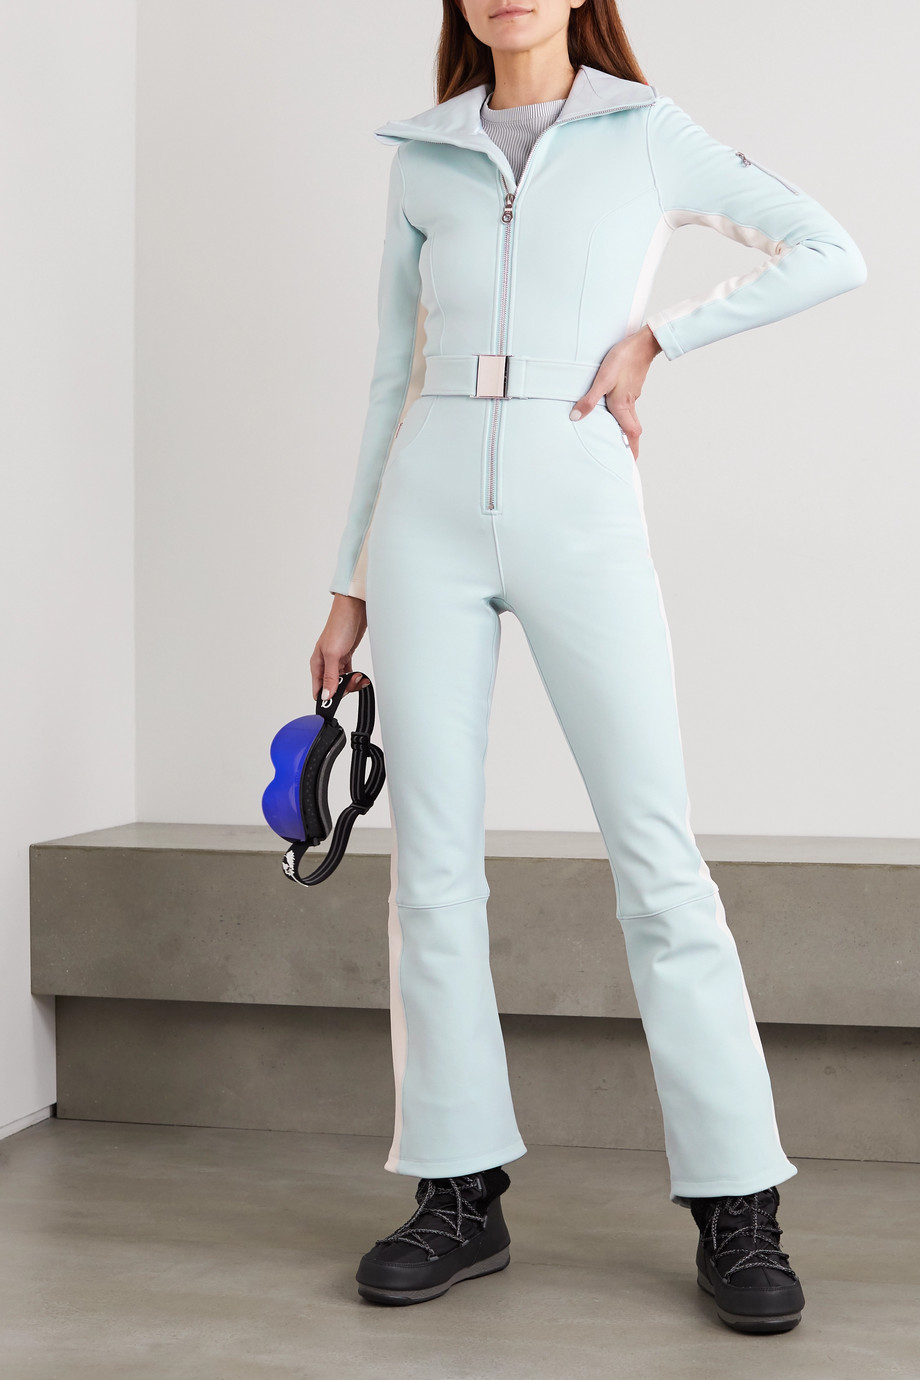 Cordova Signature Over The Boot belted striped ski suit